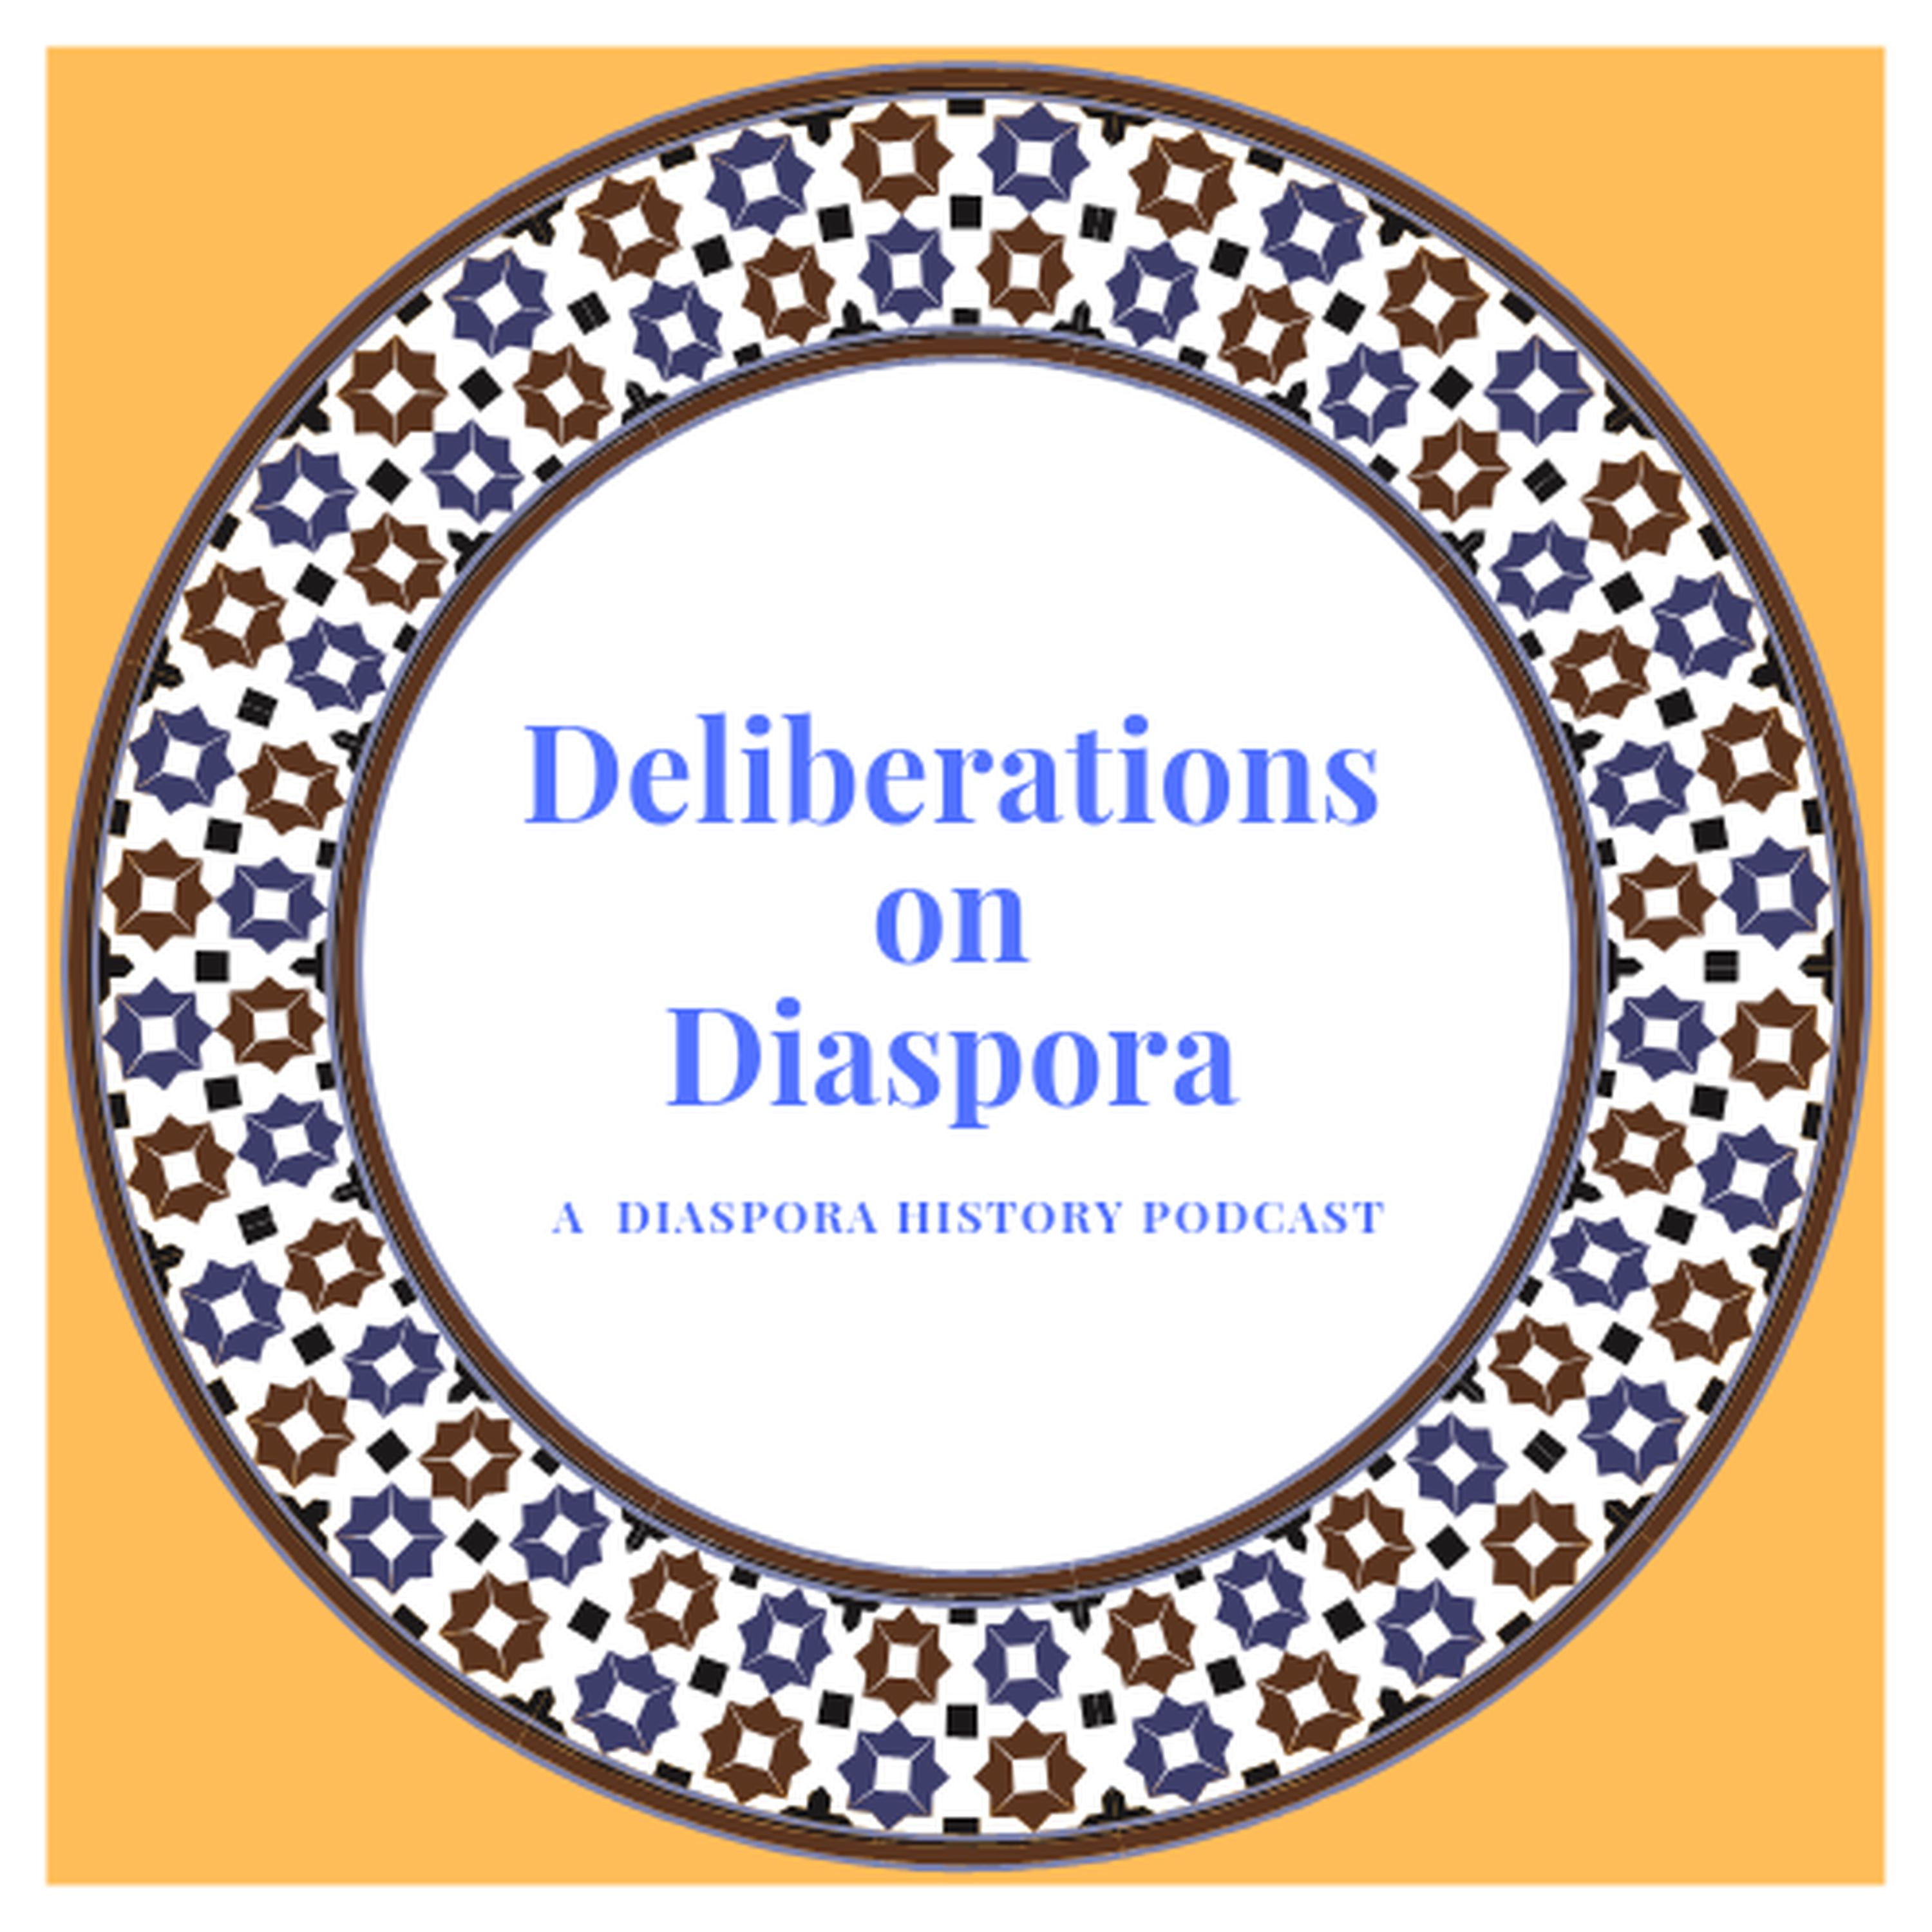 Deliberations on Diaspora – CFRC Podcast Network